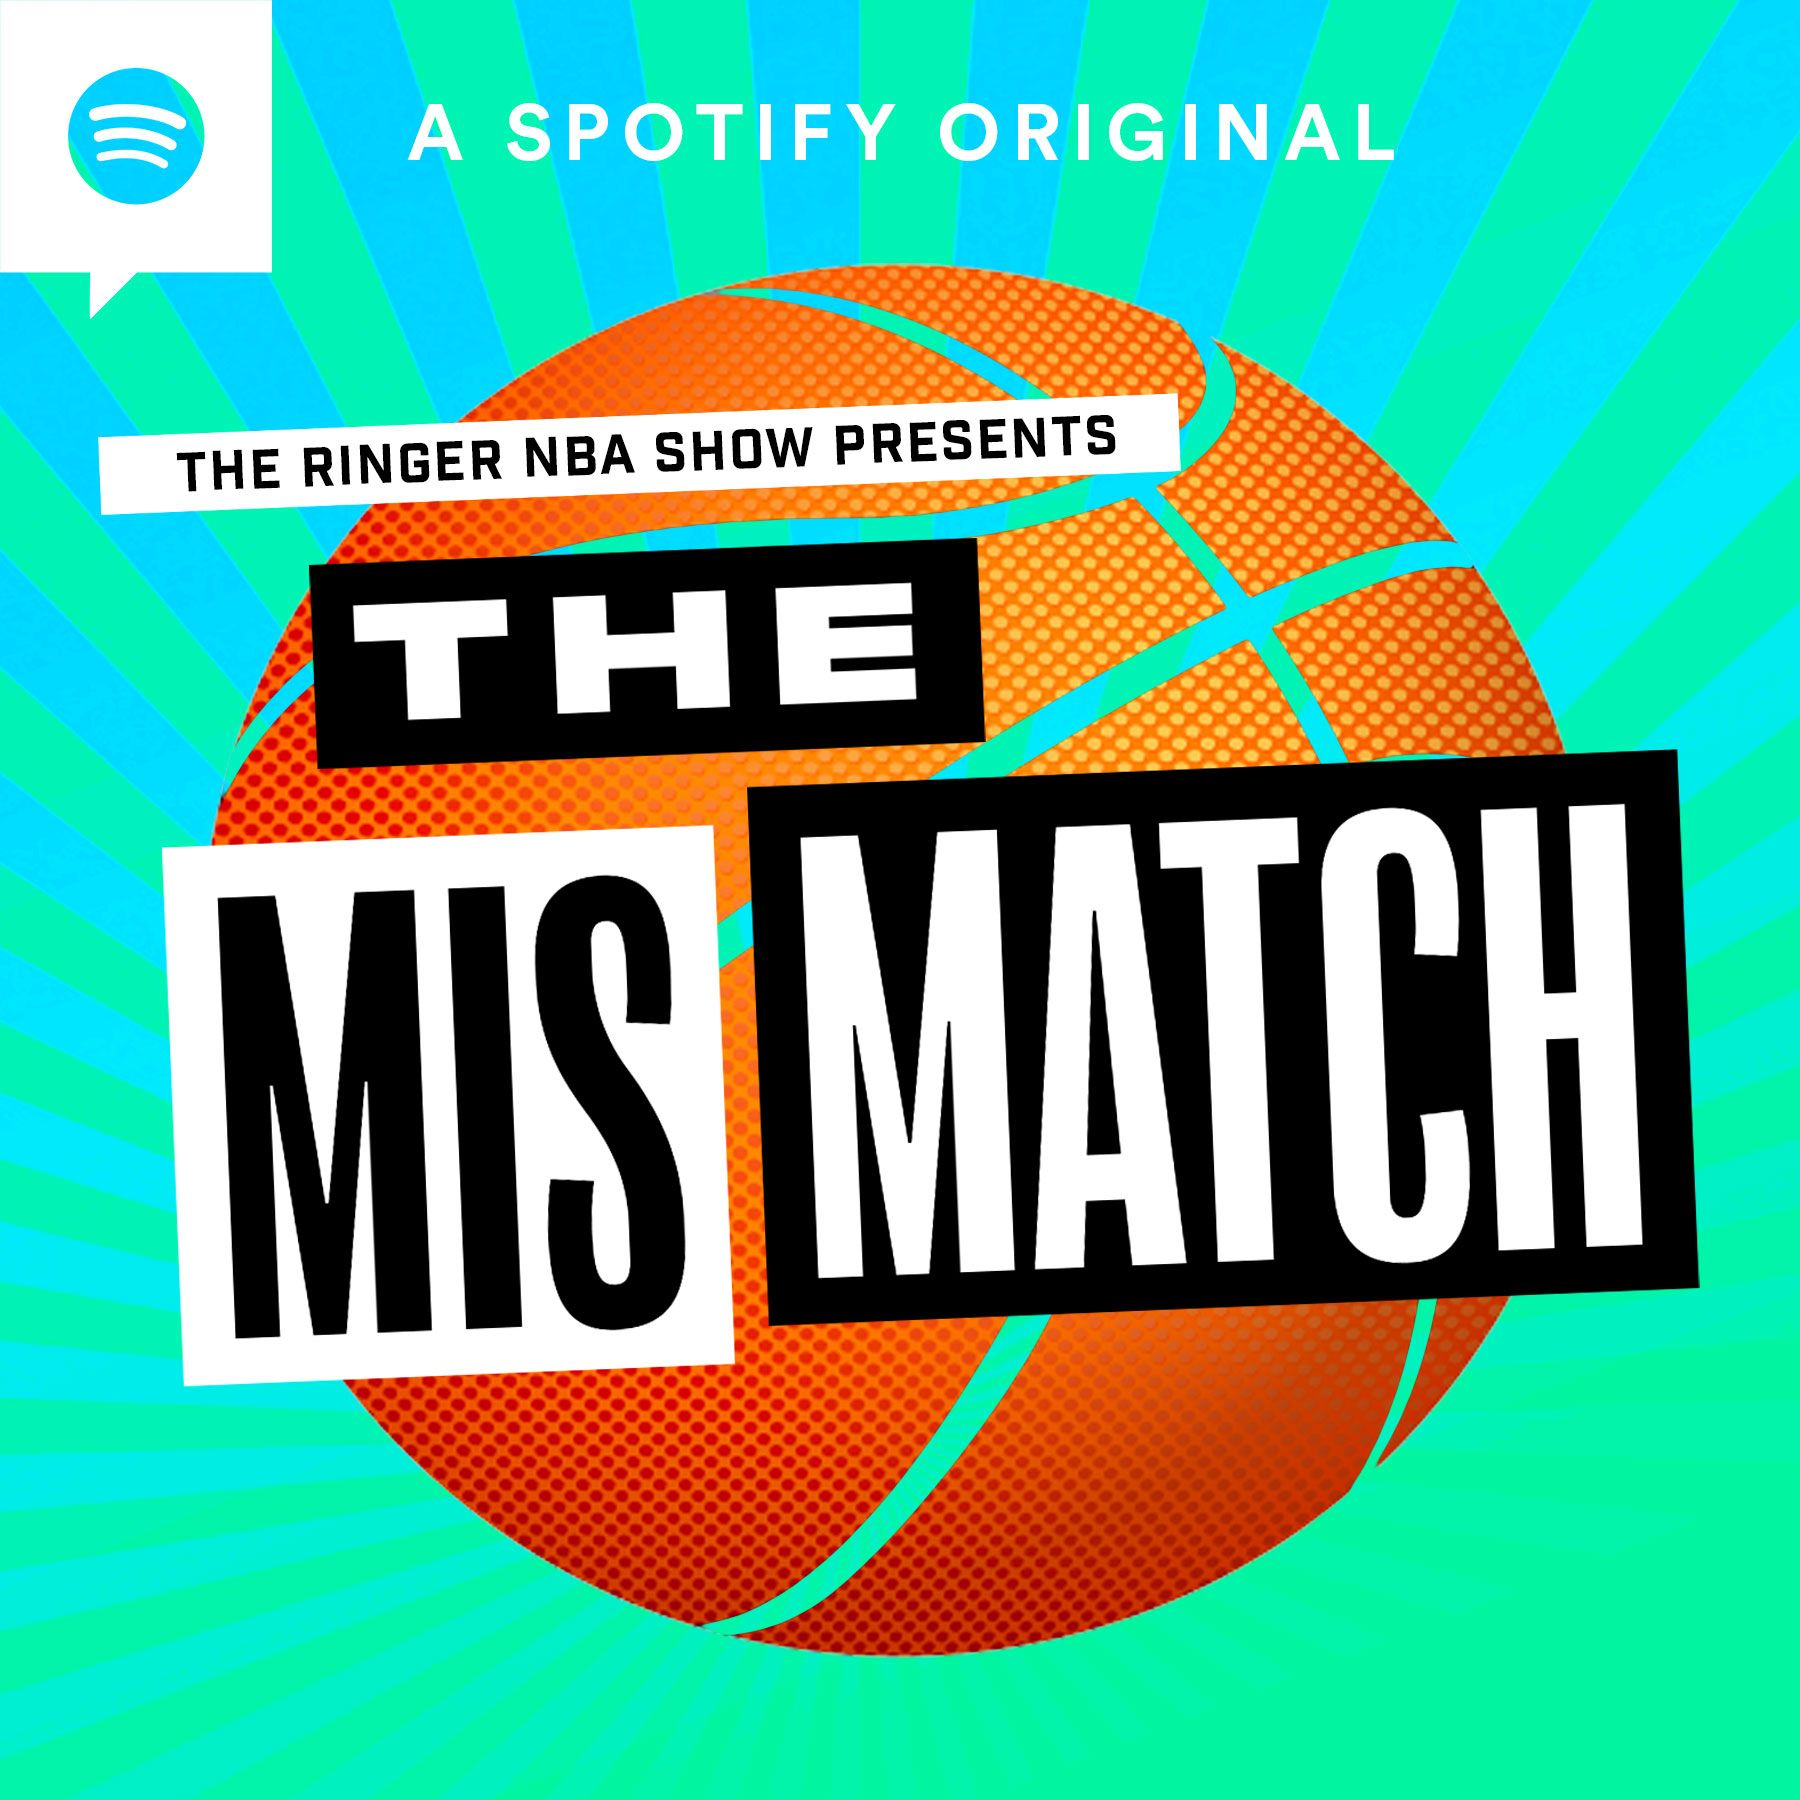 The Mismatch's 2020-21 NBA Season Preview